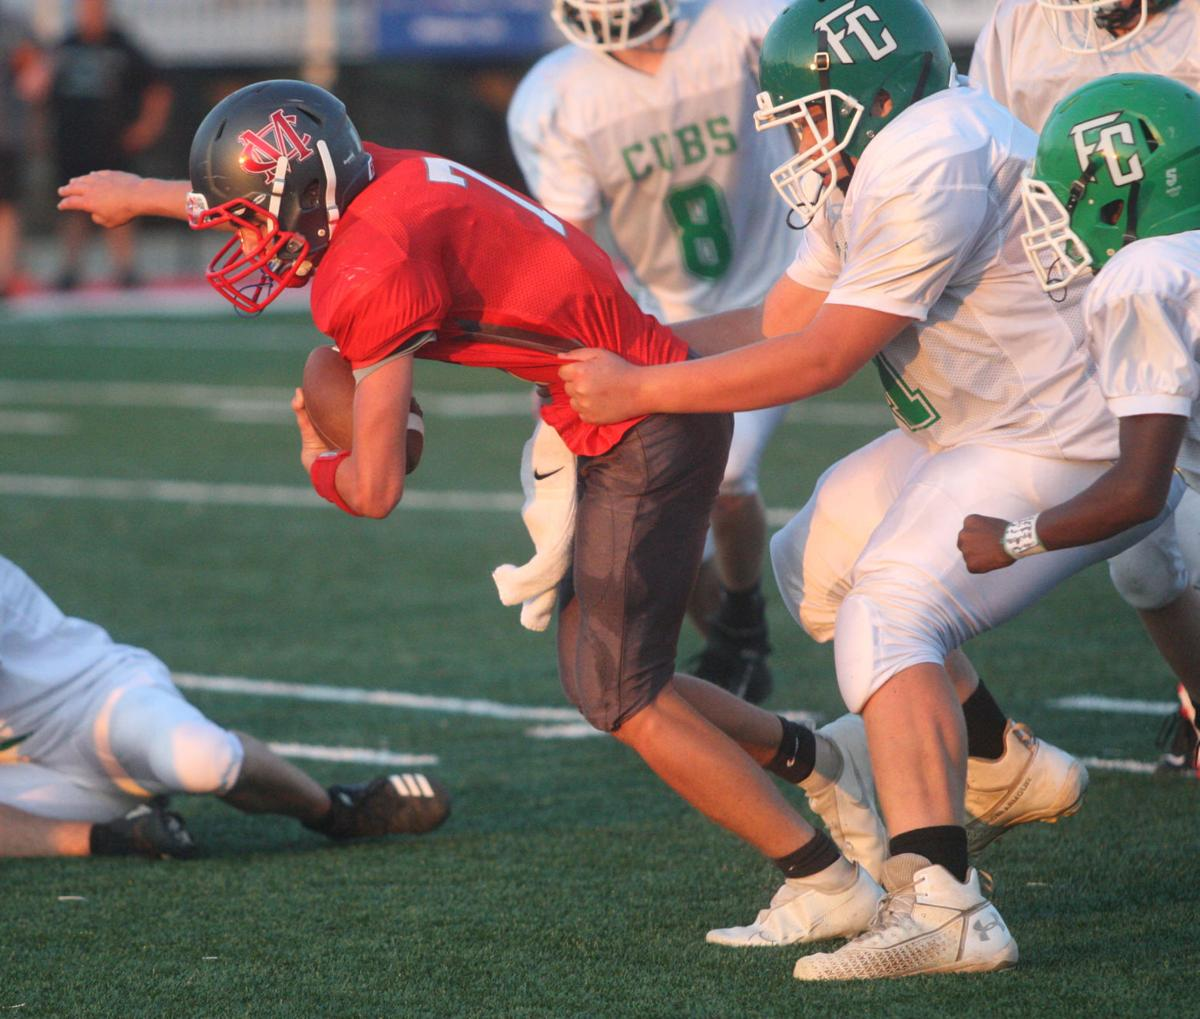 Fighting the tackle